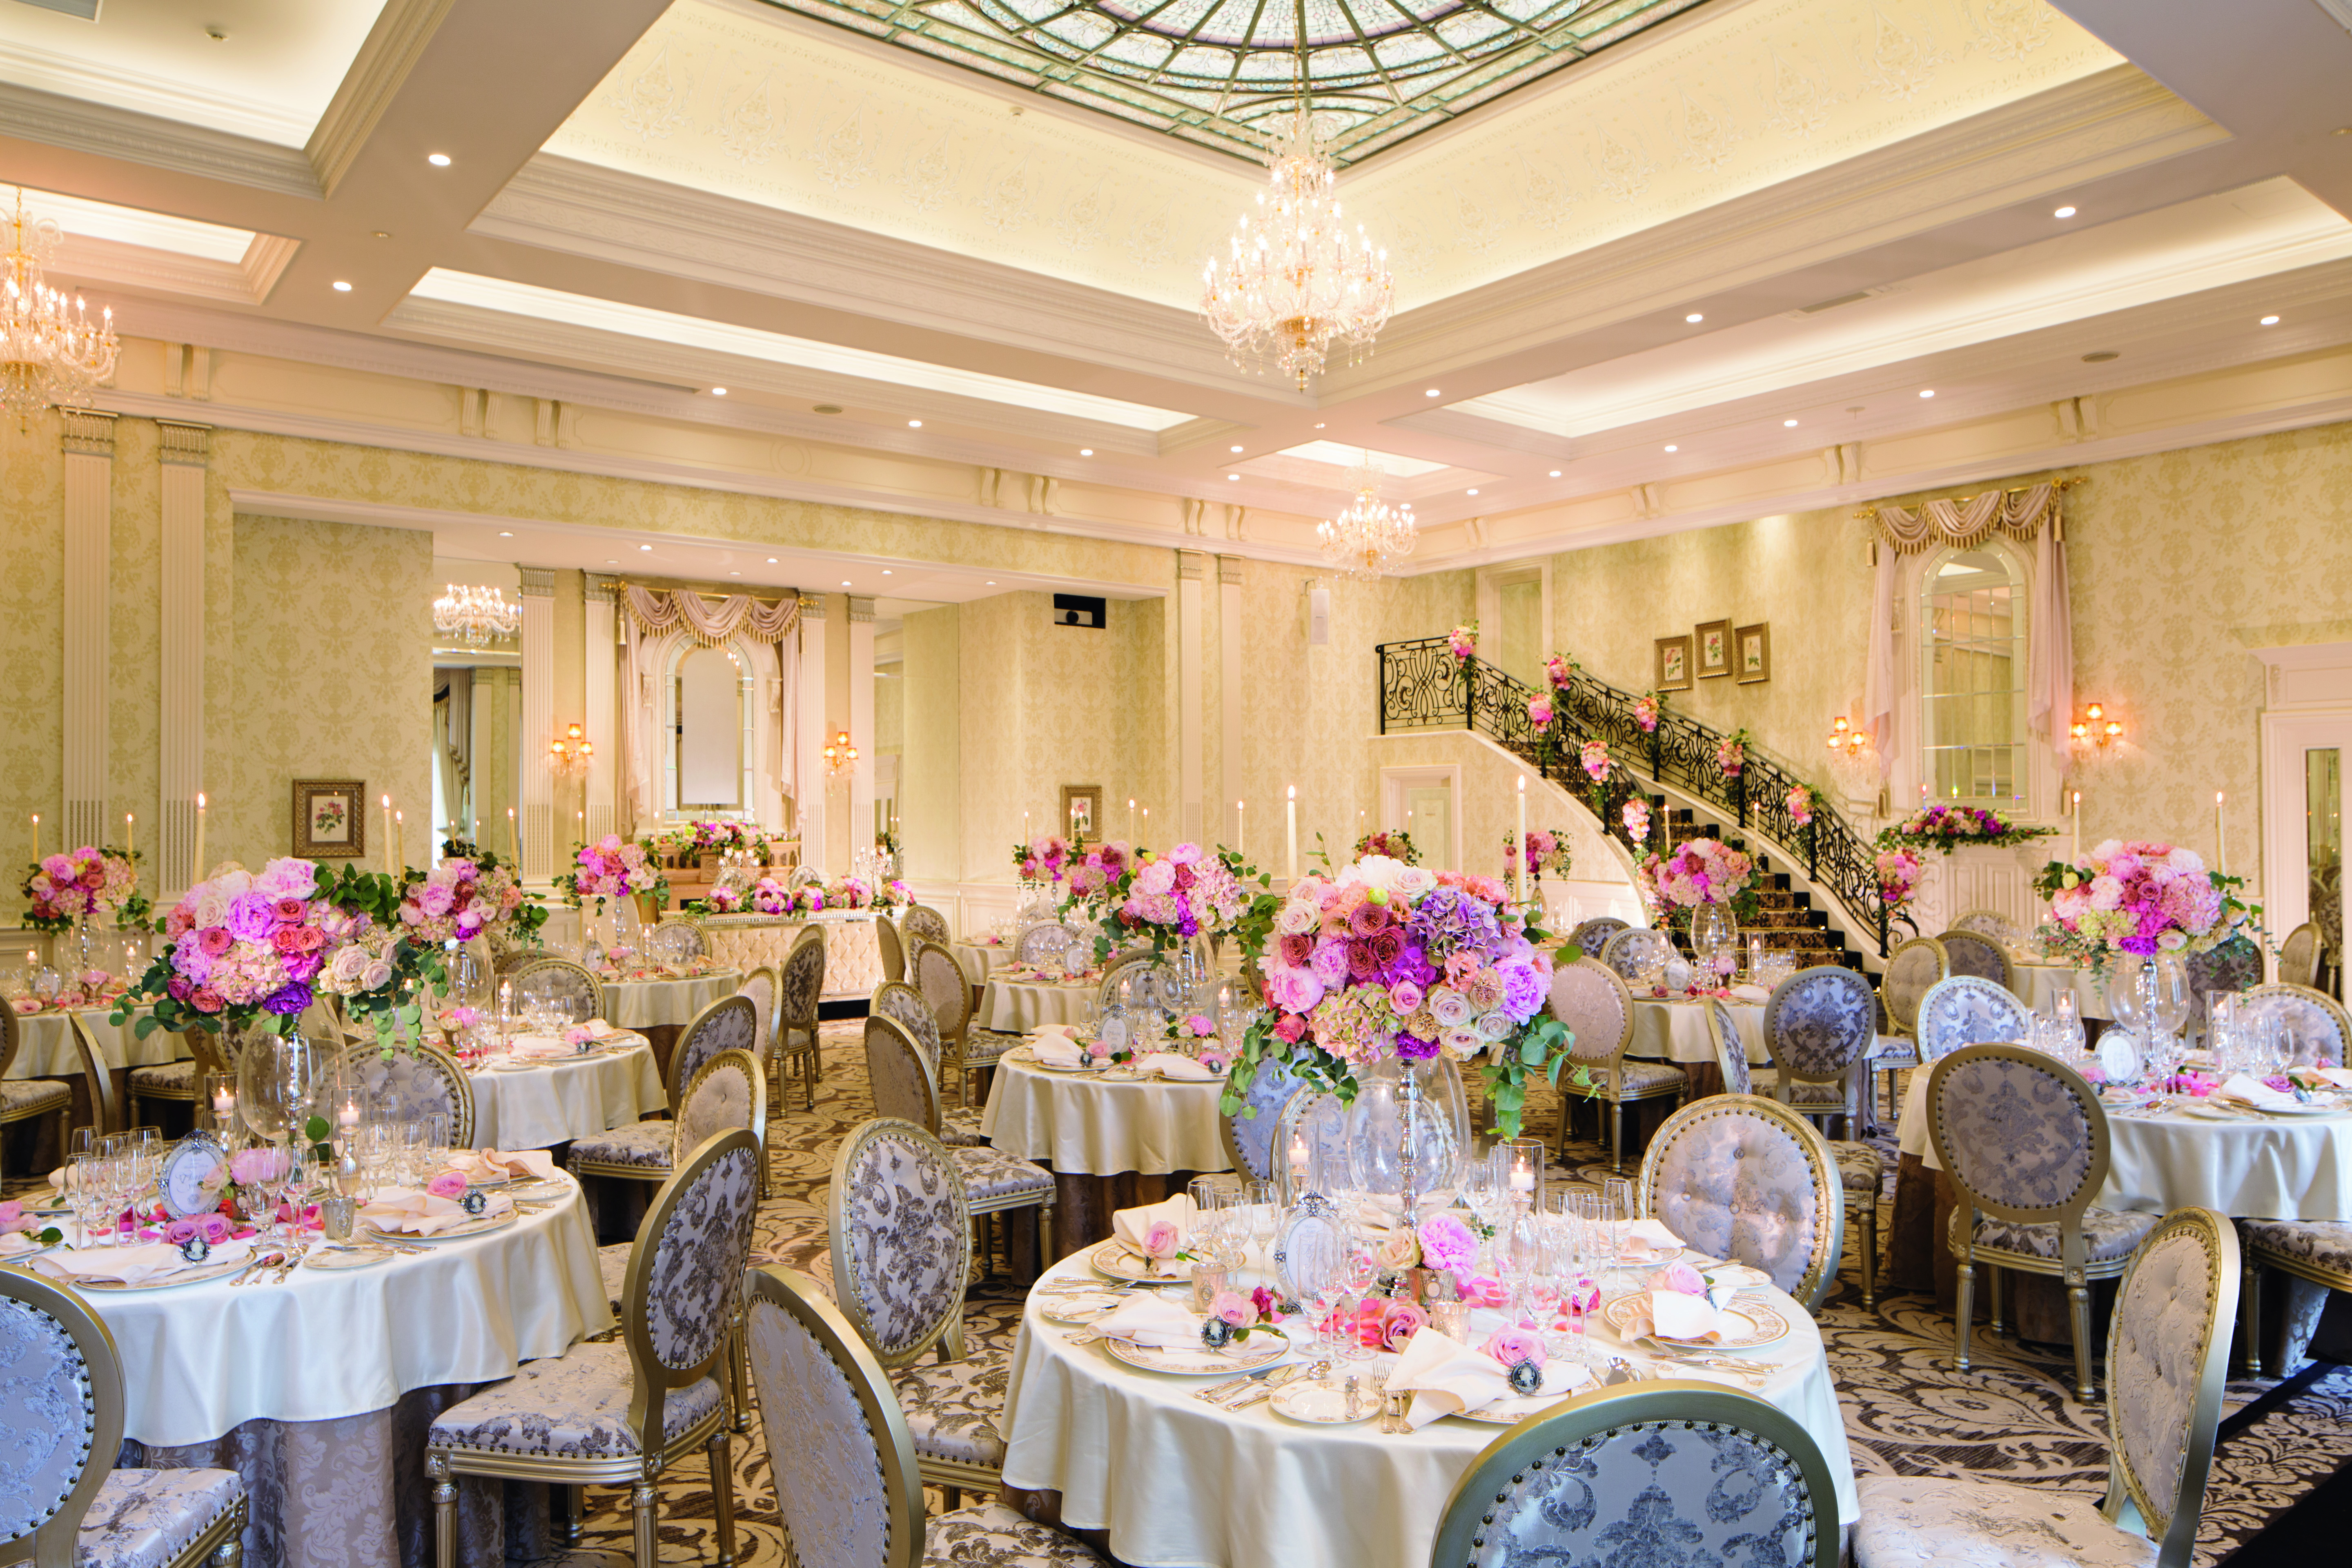 Japan Wedding Banquet HK百花籠